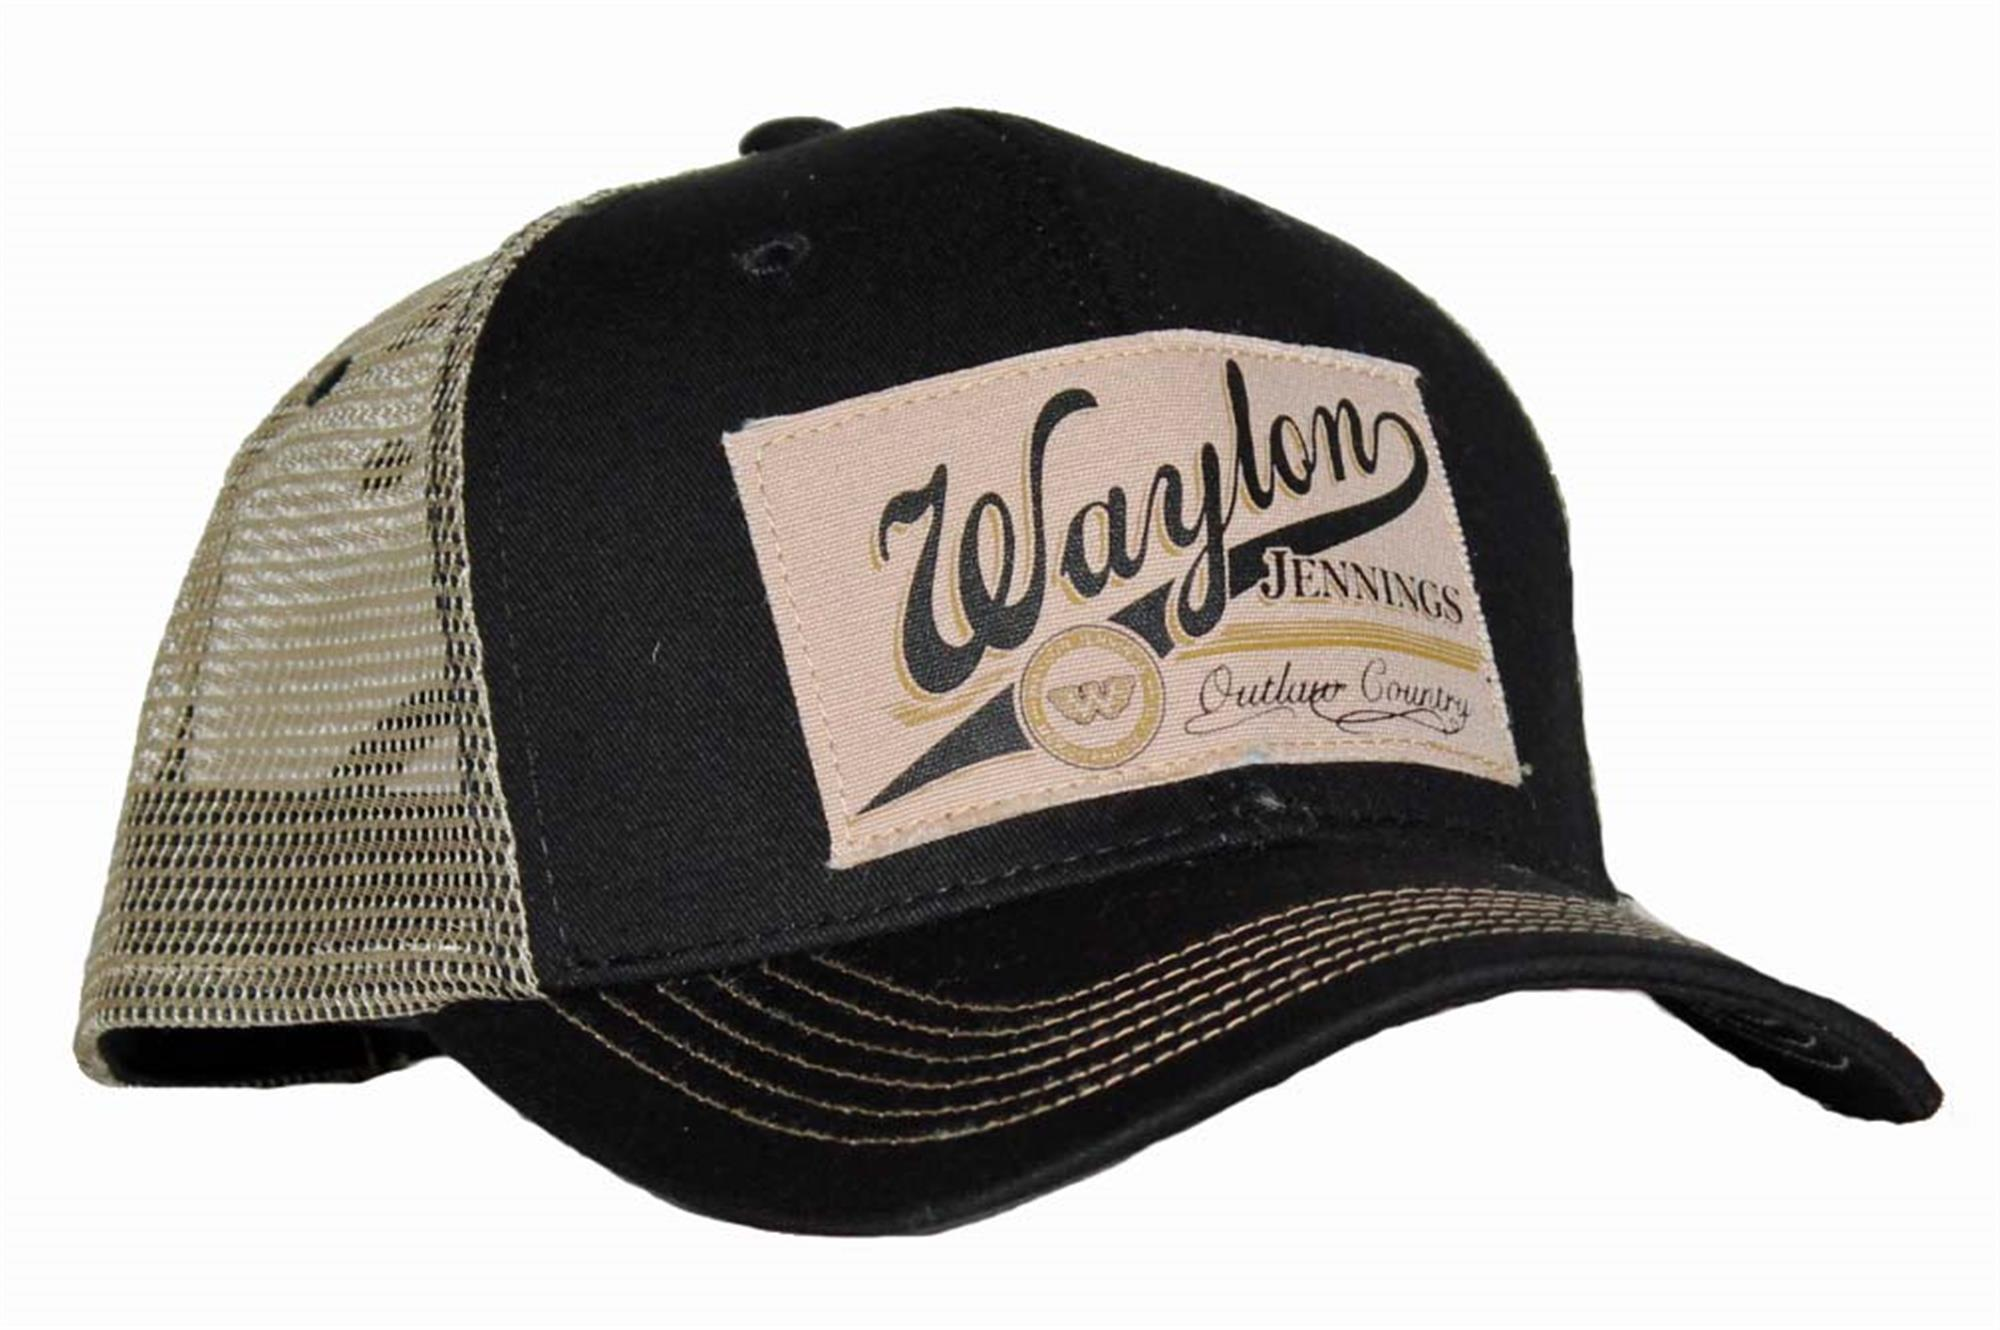 Waylon Jennings Outlaw Country Trucker Hat